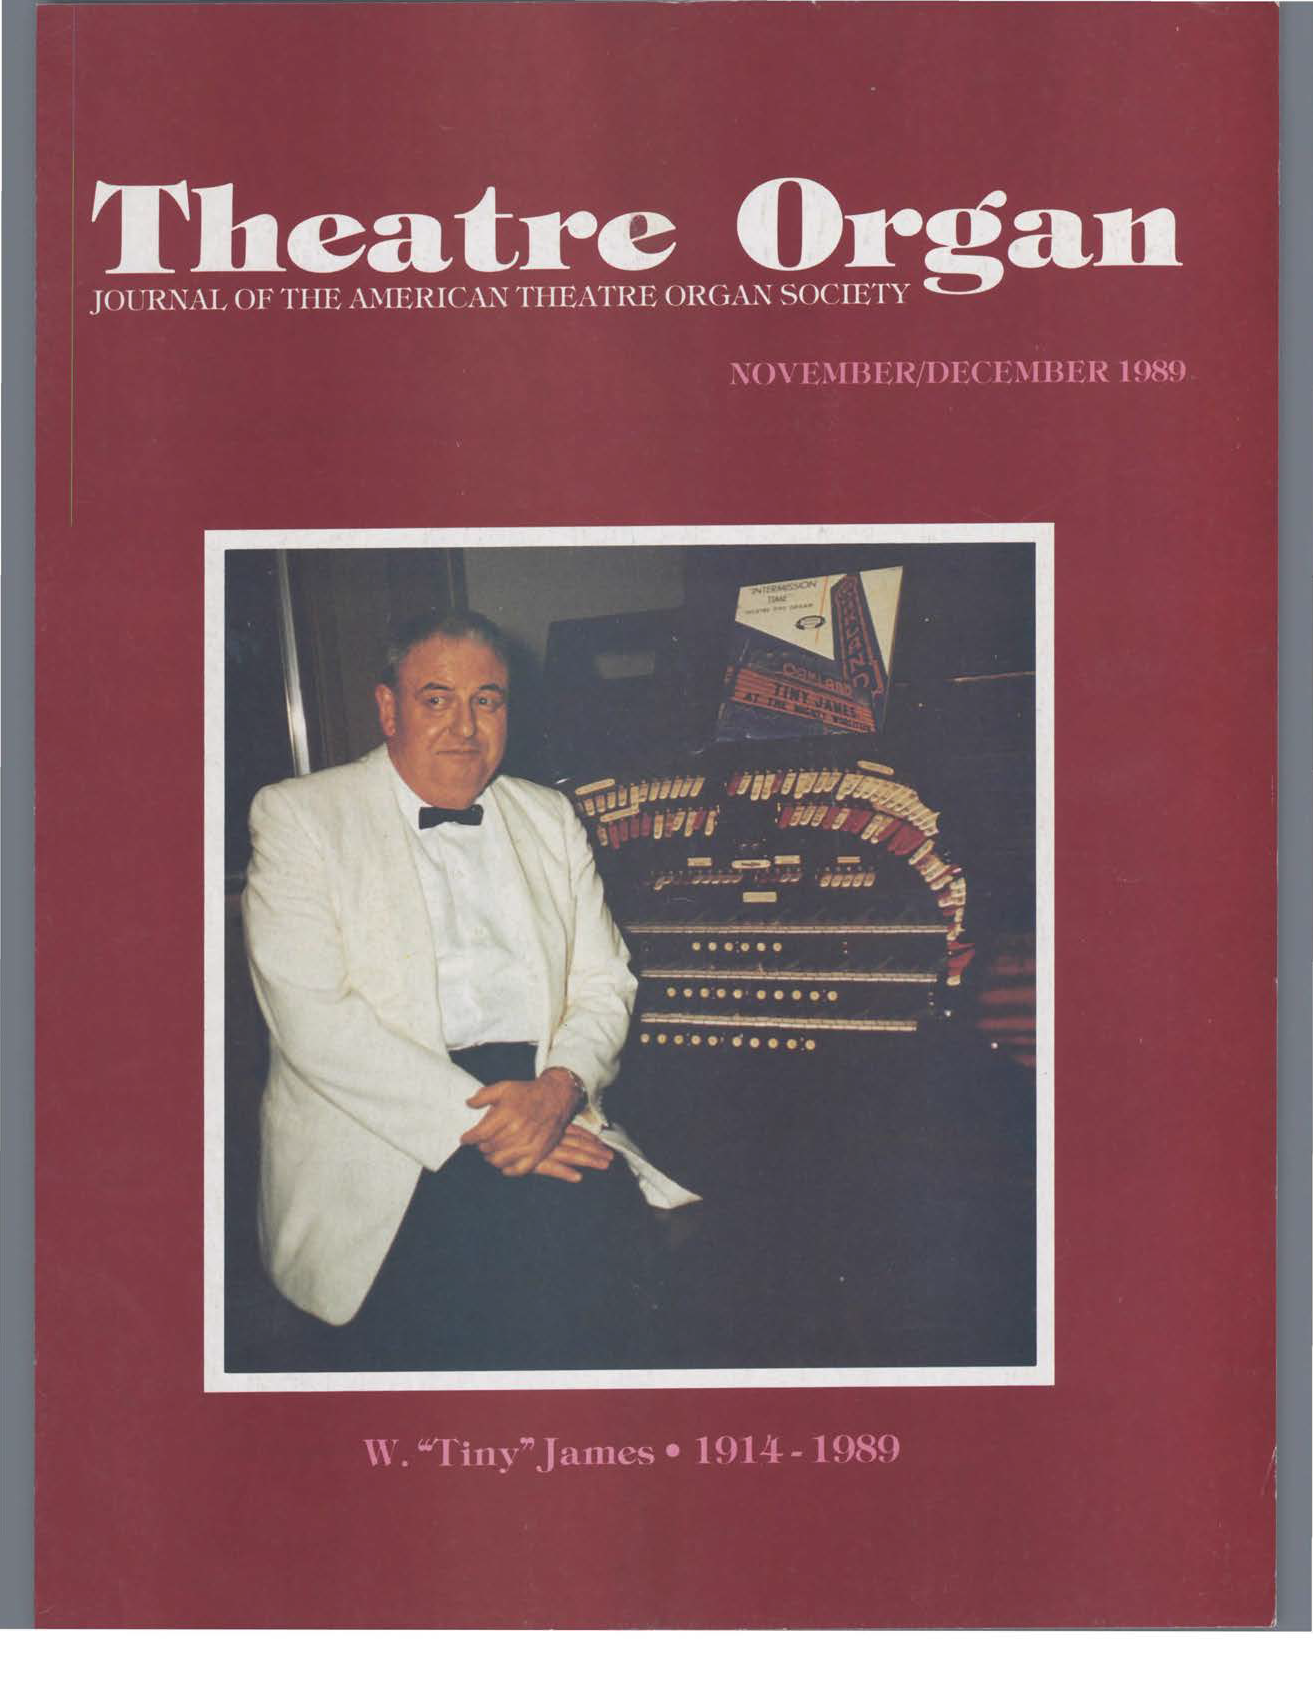 Theatre Organ, November - December 1989, Volume 31, Number 6